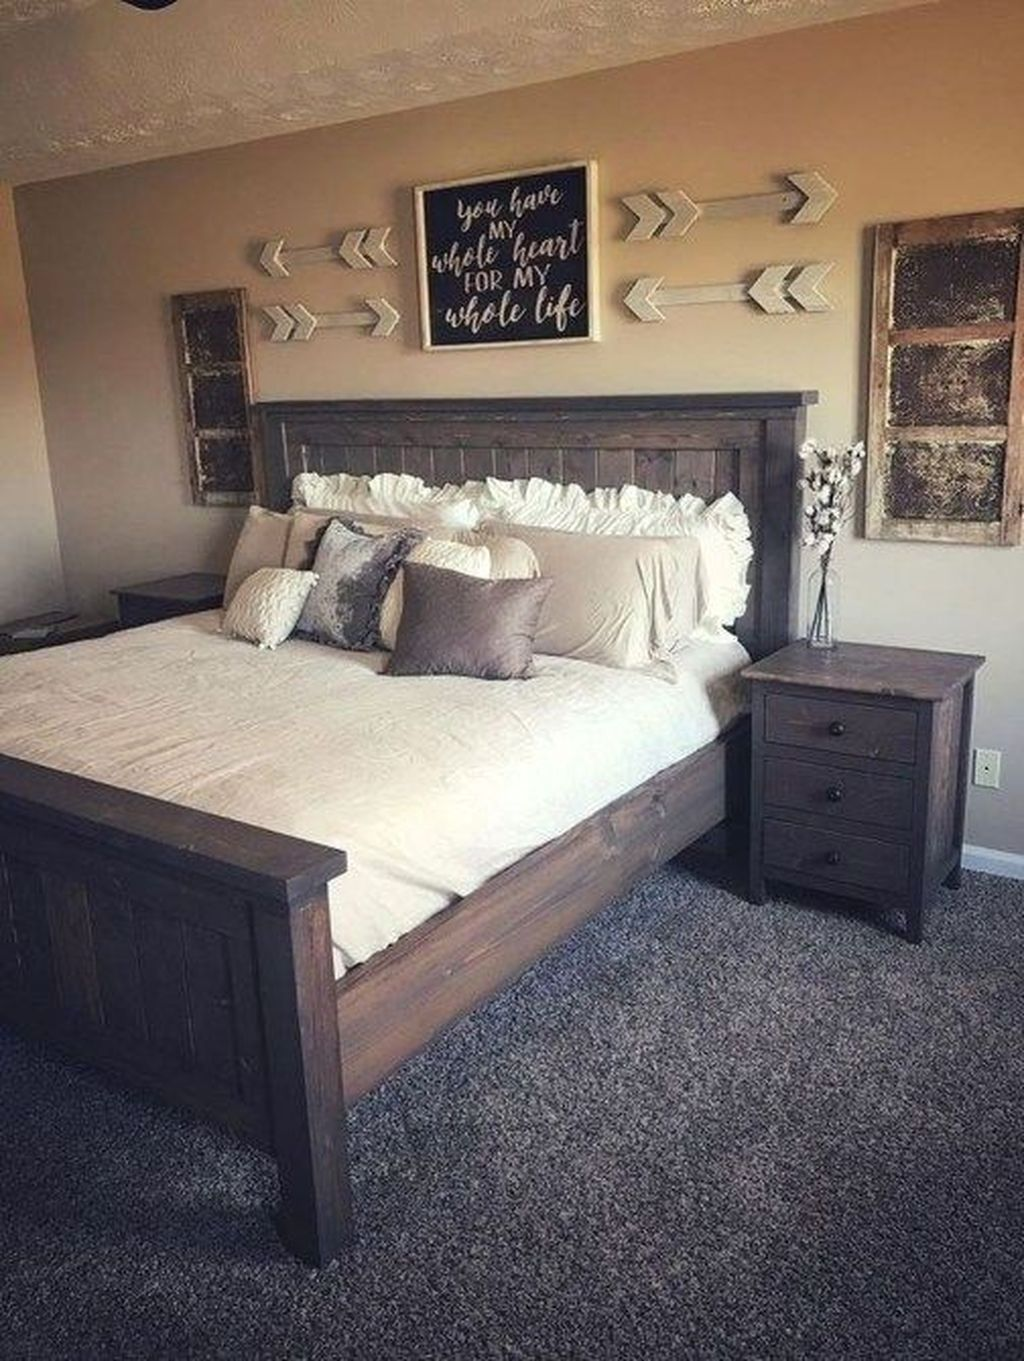 Excellent bedroom decor ideas are offered on our site ...